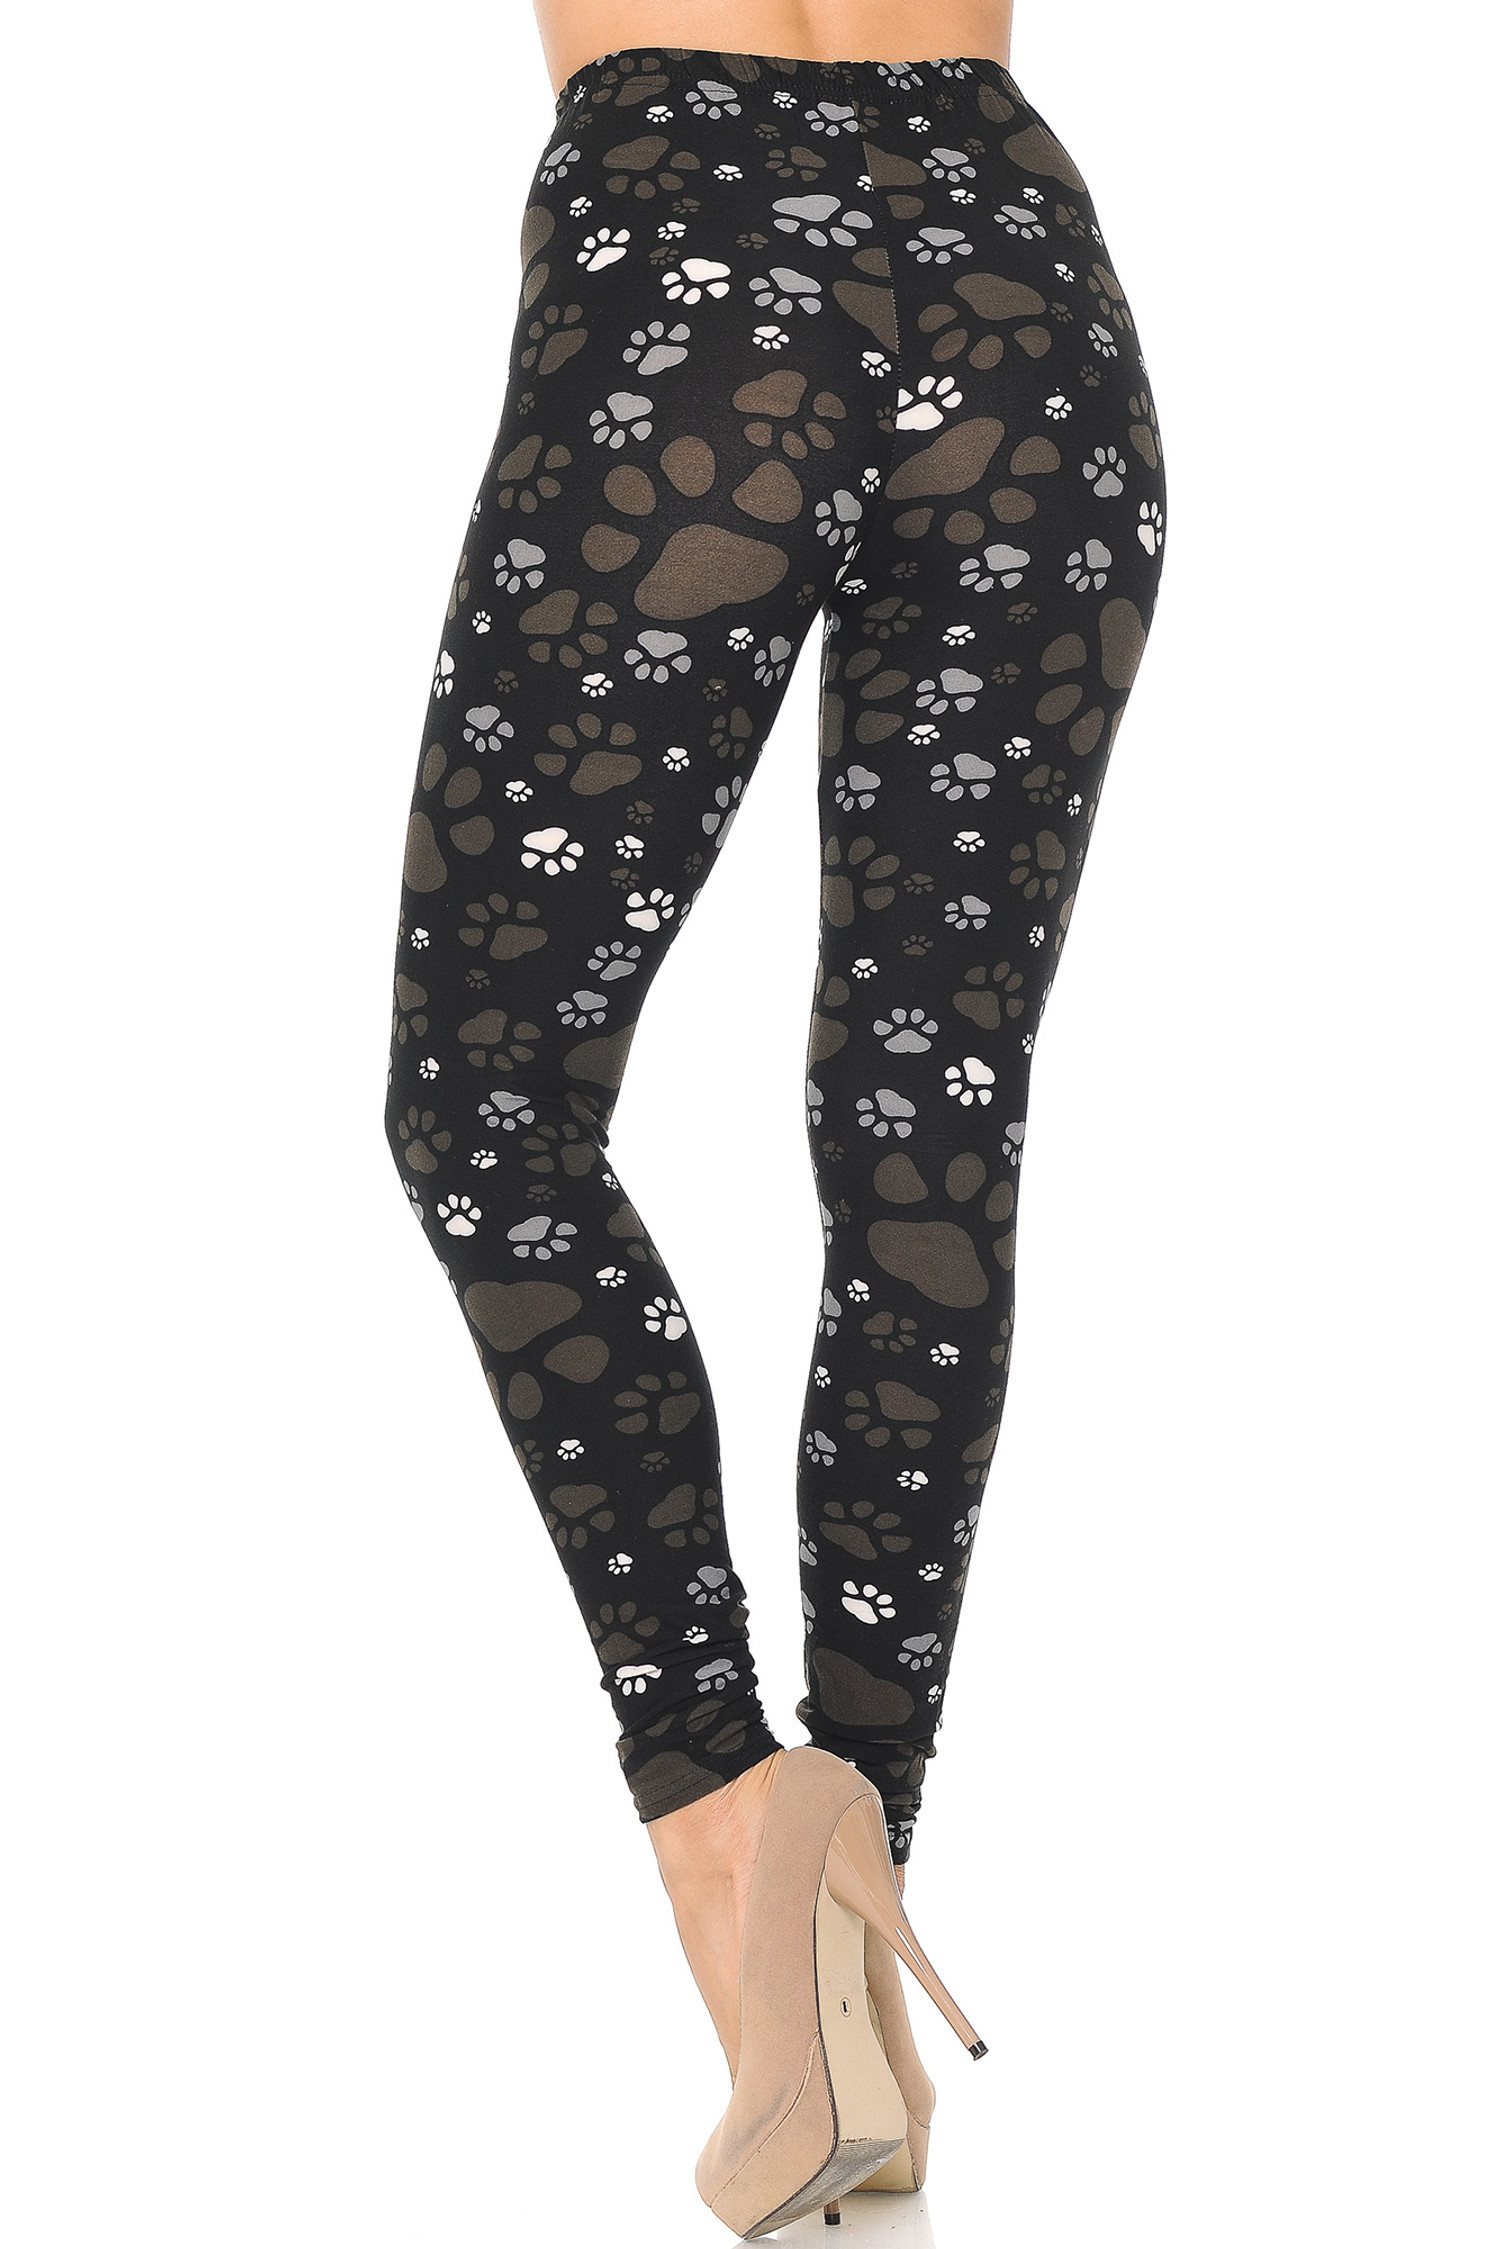 Back of Creamy Soft Muddy Paw Print Leggings  - USA Fashion™ with a neutral colored look perfect for mixing and matching with tops of all colors.